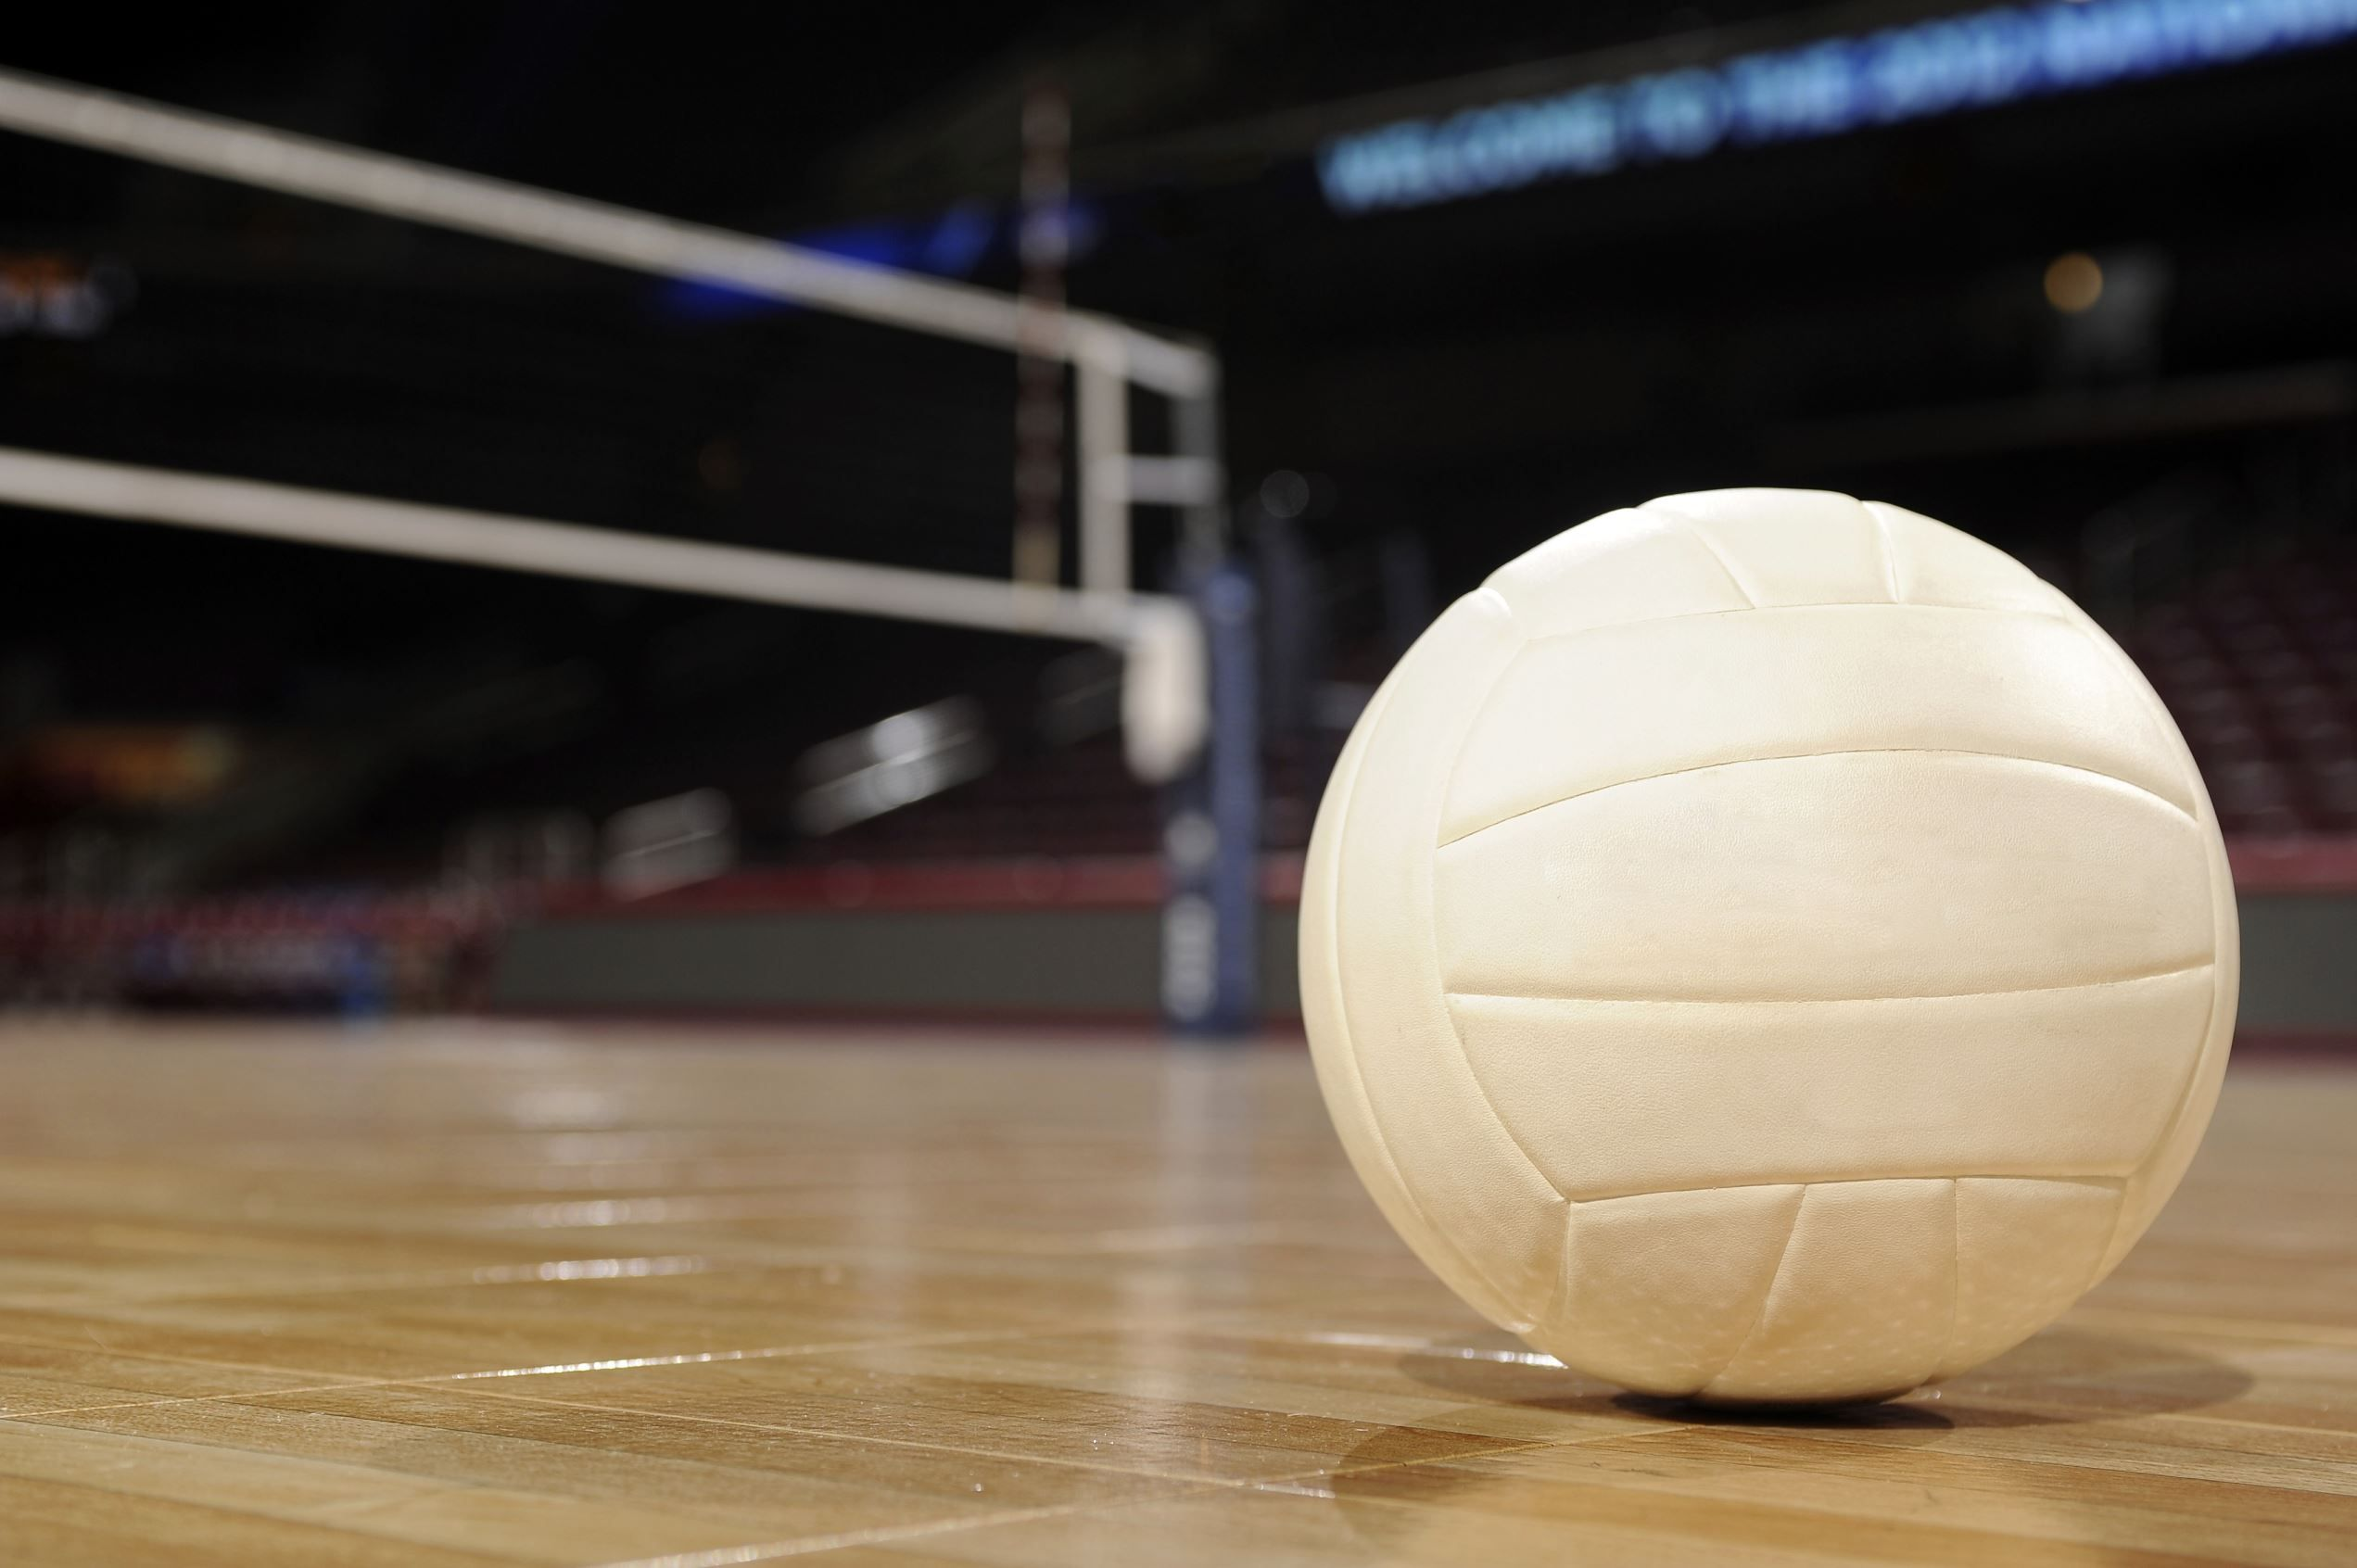 When A Volleyball Player Was Benched Her Parents Sued For Playing Time Volleyball Backgrounds Volleyball Wallpaper Volleyball